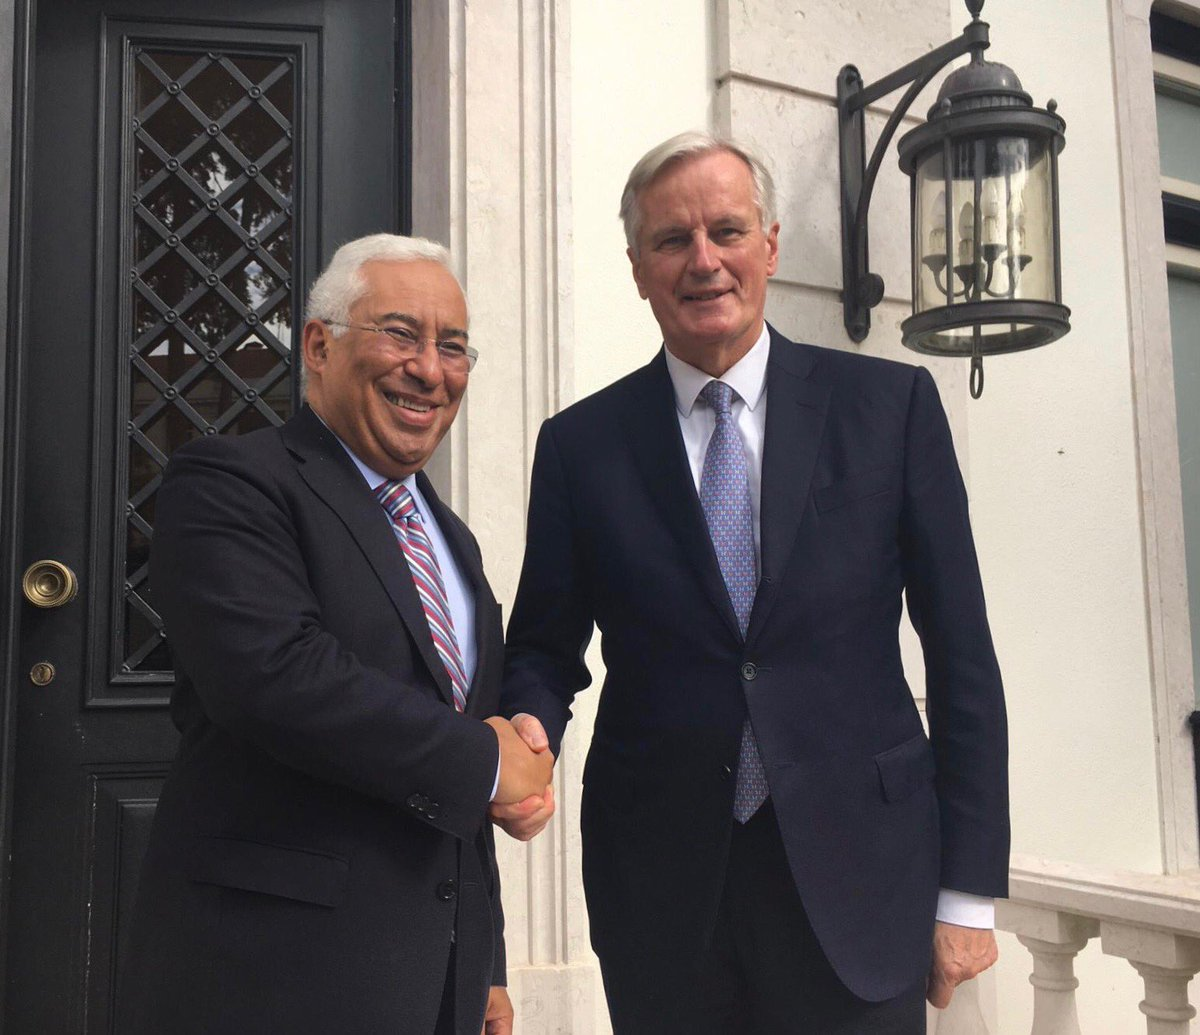 #EU27 consultations continue today in Lisbon: pleased to meet PM @antoniocostapm to take stock of the latest state of play and discuss the future EU-UK relationship, which will be based on a strong level playing field. #Brexit